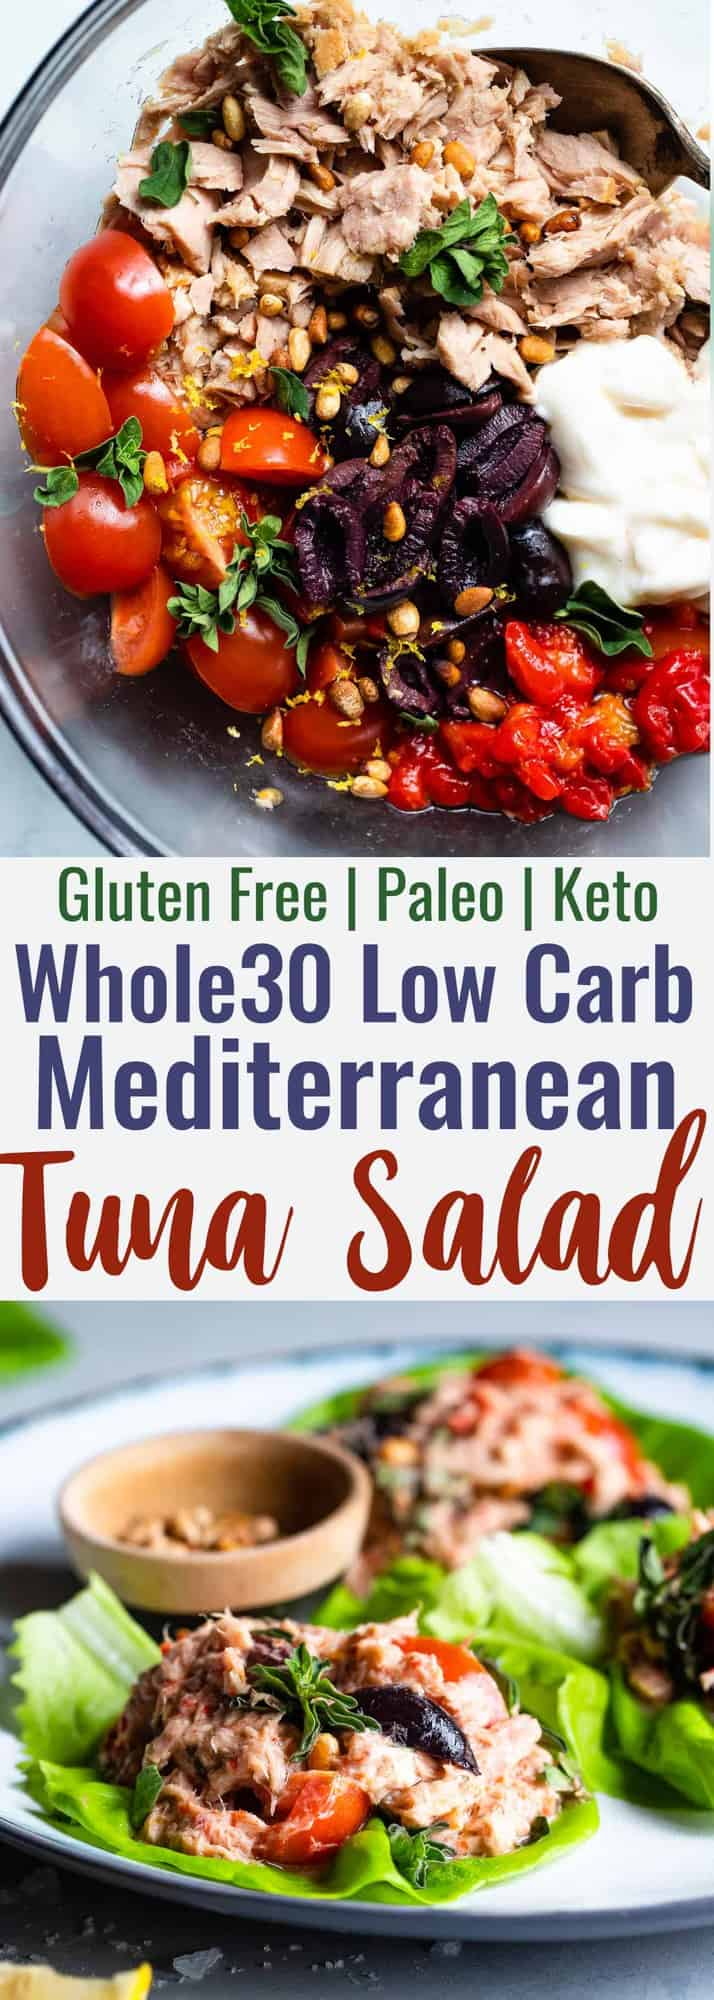 Paleo Mediterranean Tuna Salad with Olives -  A quick and easy recipe that is great for meal prep and lunches! Gluten free, low carb, keto and whole30! | #Foodfaithfitness | #Glutenfree #Paleo #Keto #Lowcarb #Whole30